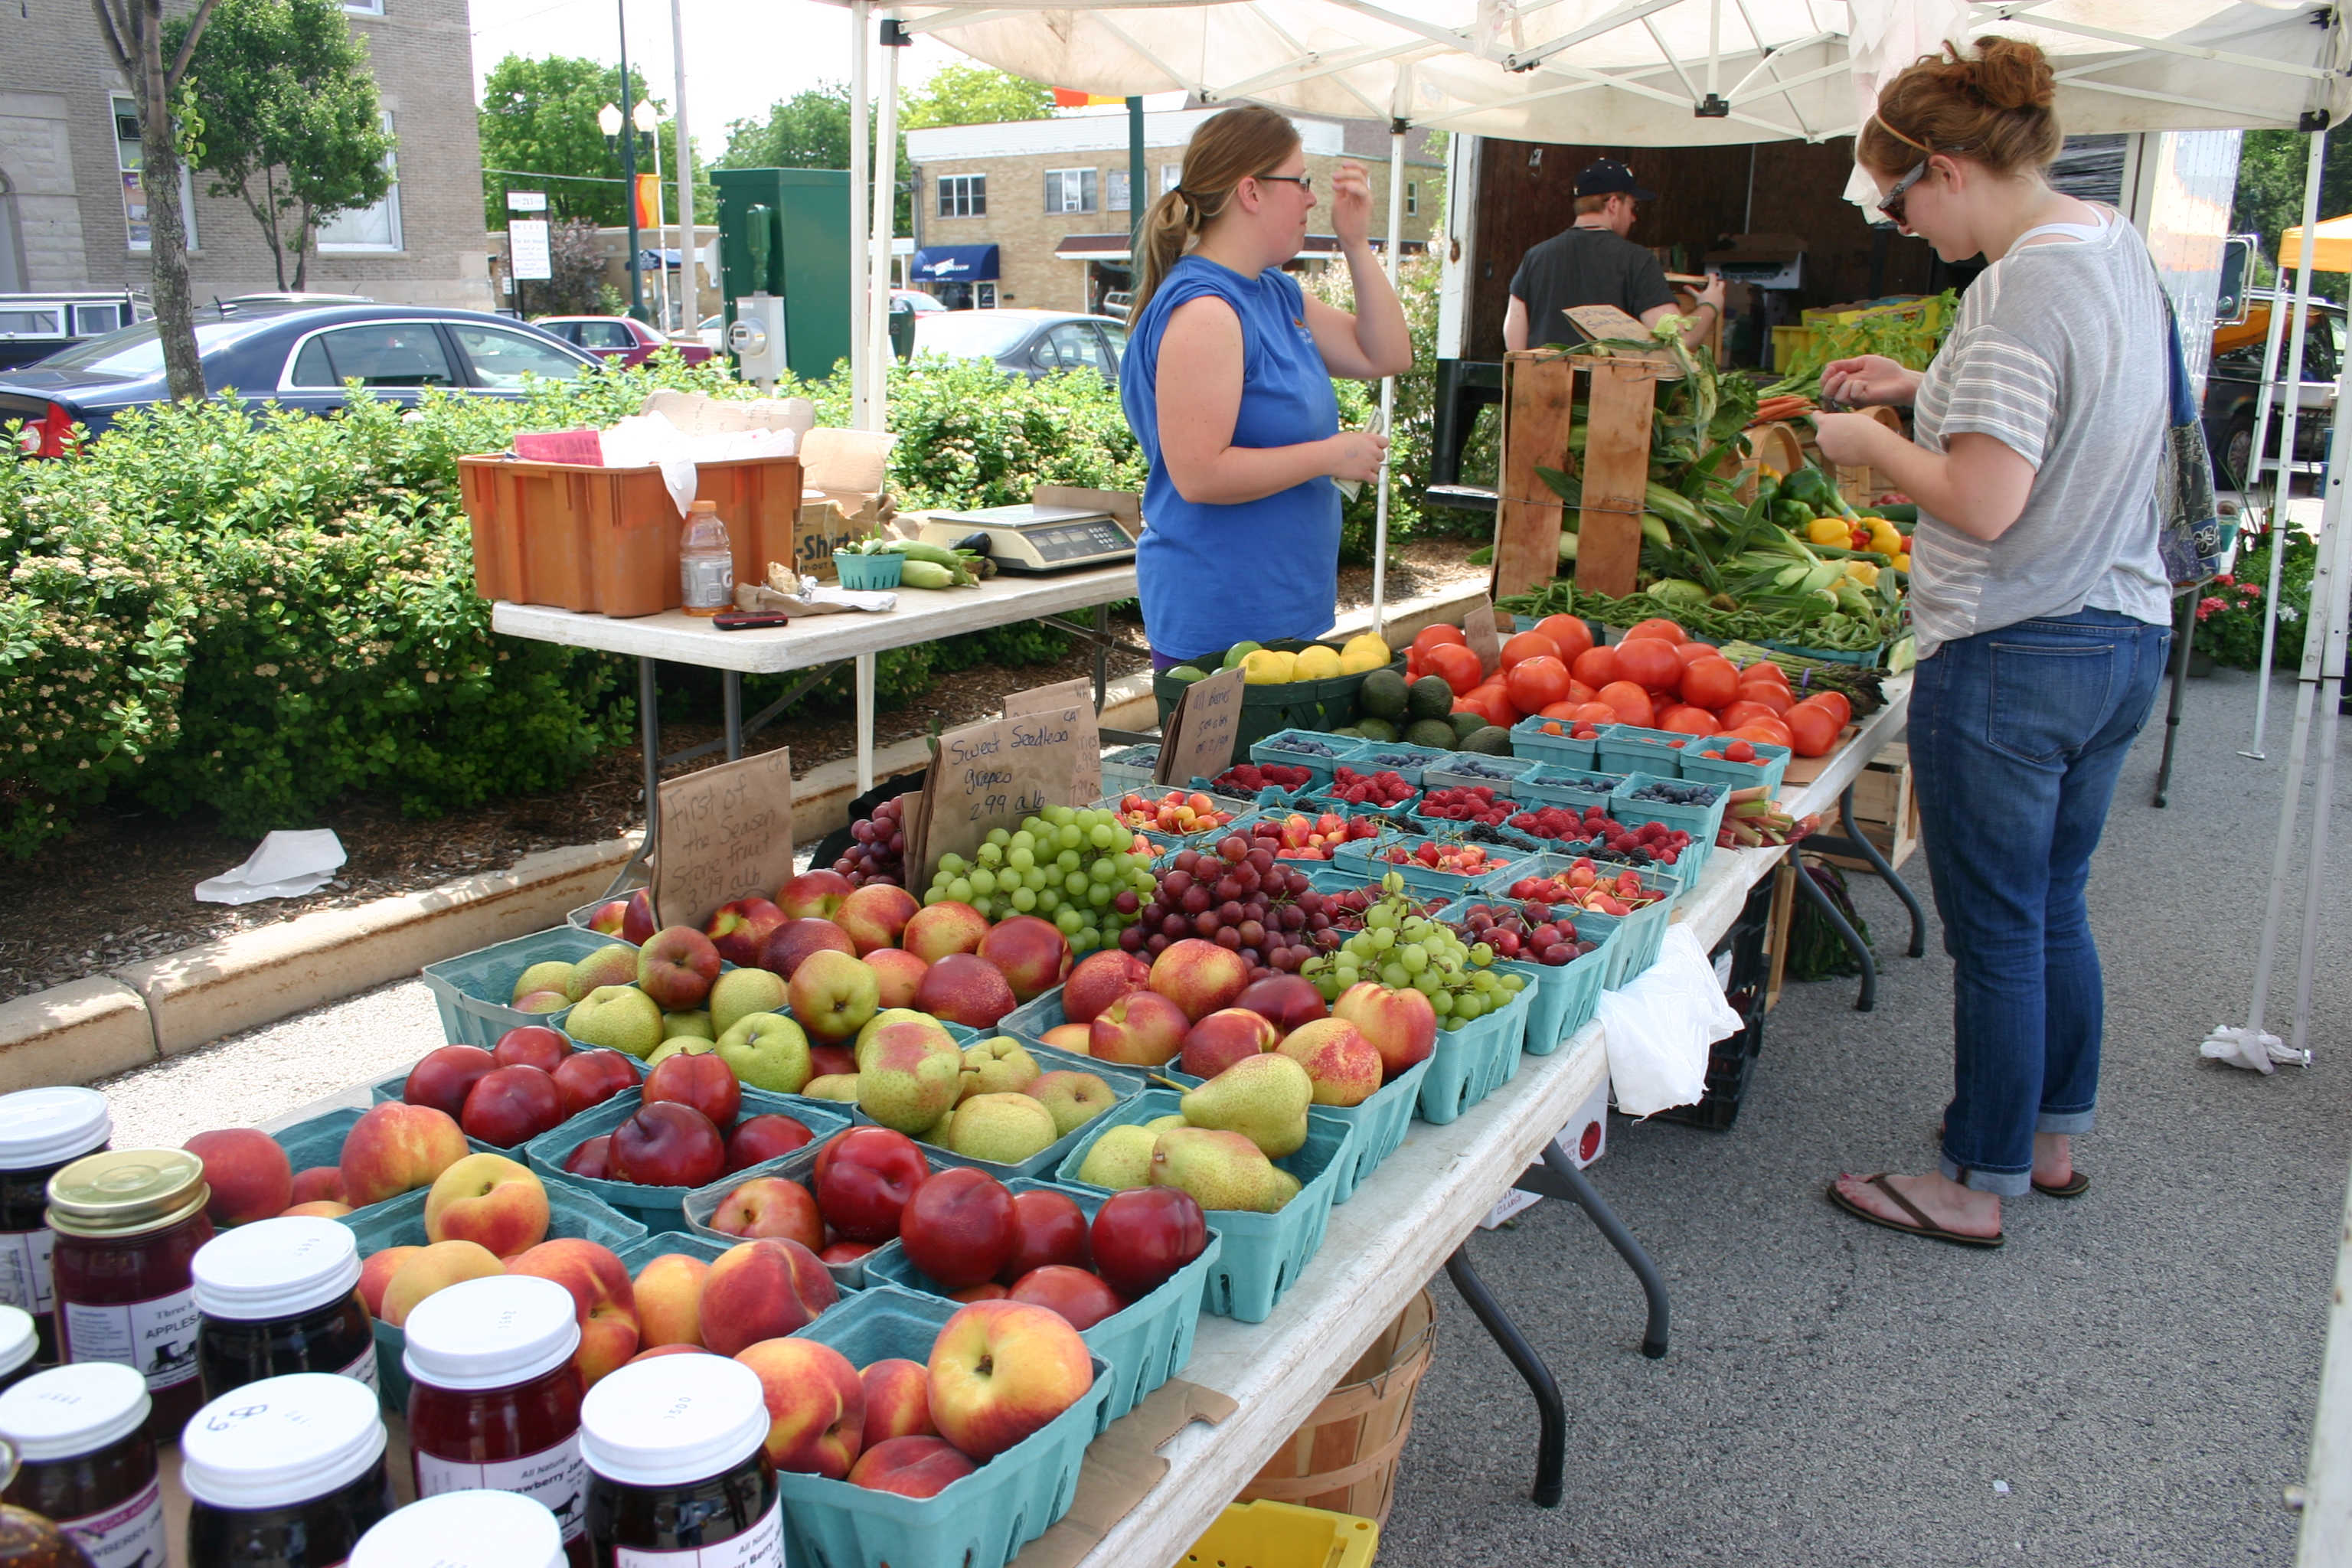 Farmers Market - Discover Sycamore